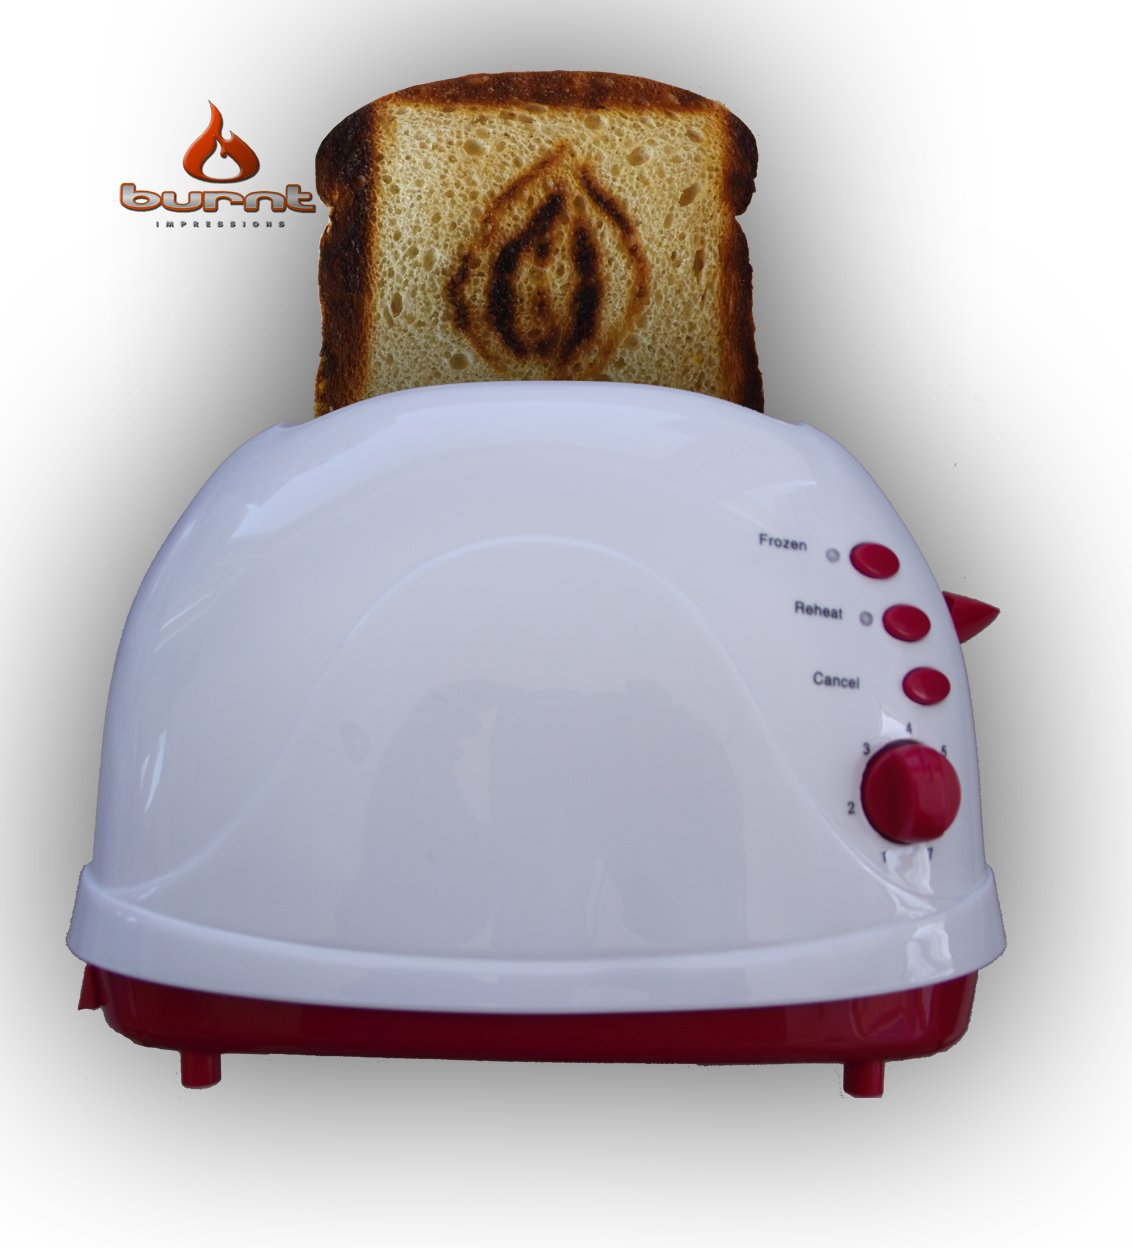 The Vagina (A.K.A. Eye of Sauron's Vulva) Toaster